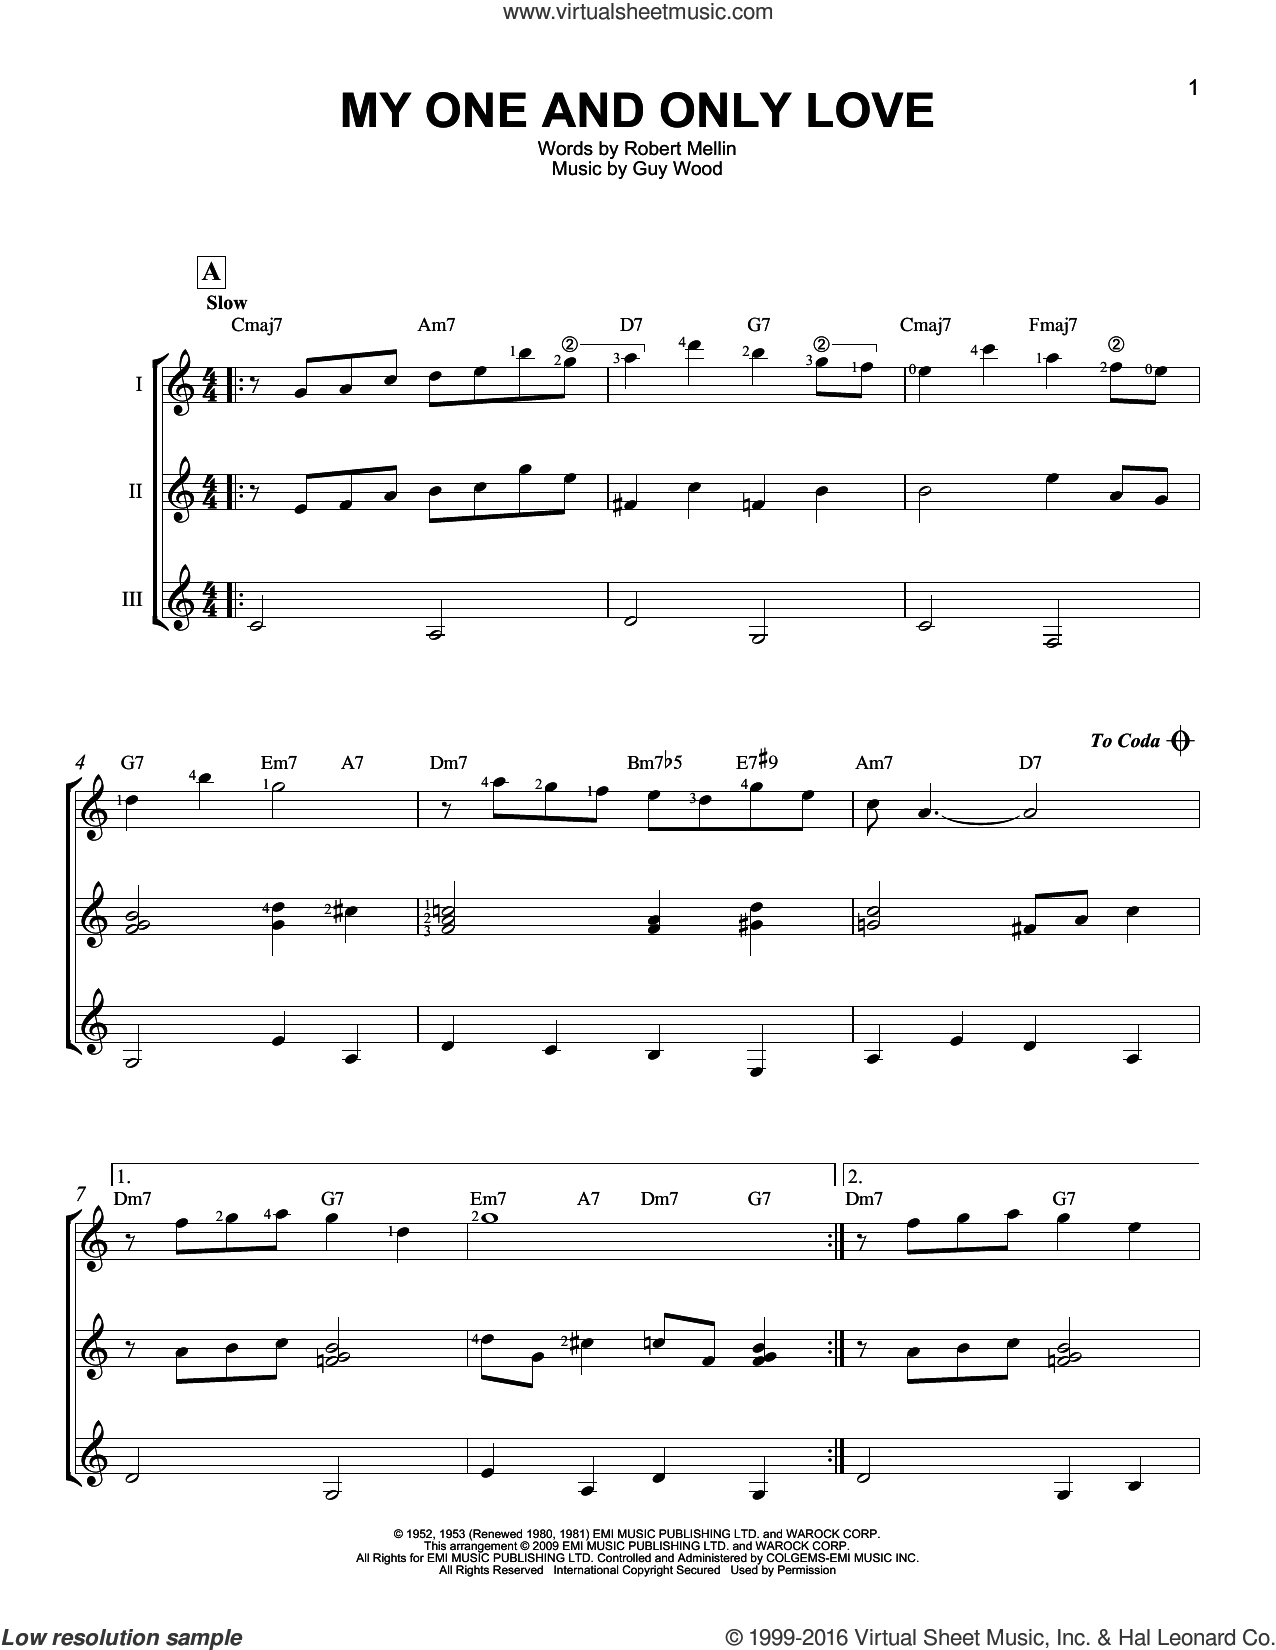 My One And Only Love sheet music for guitar ensemble by Robert Mellin and Guy Wood, intermediate skill level